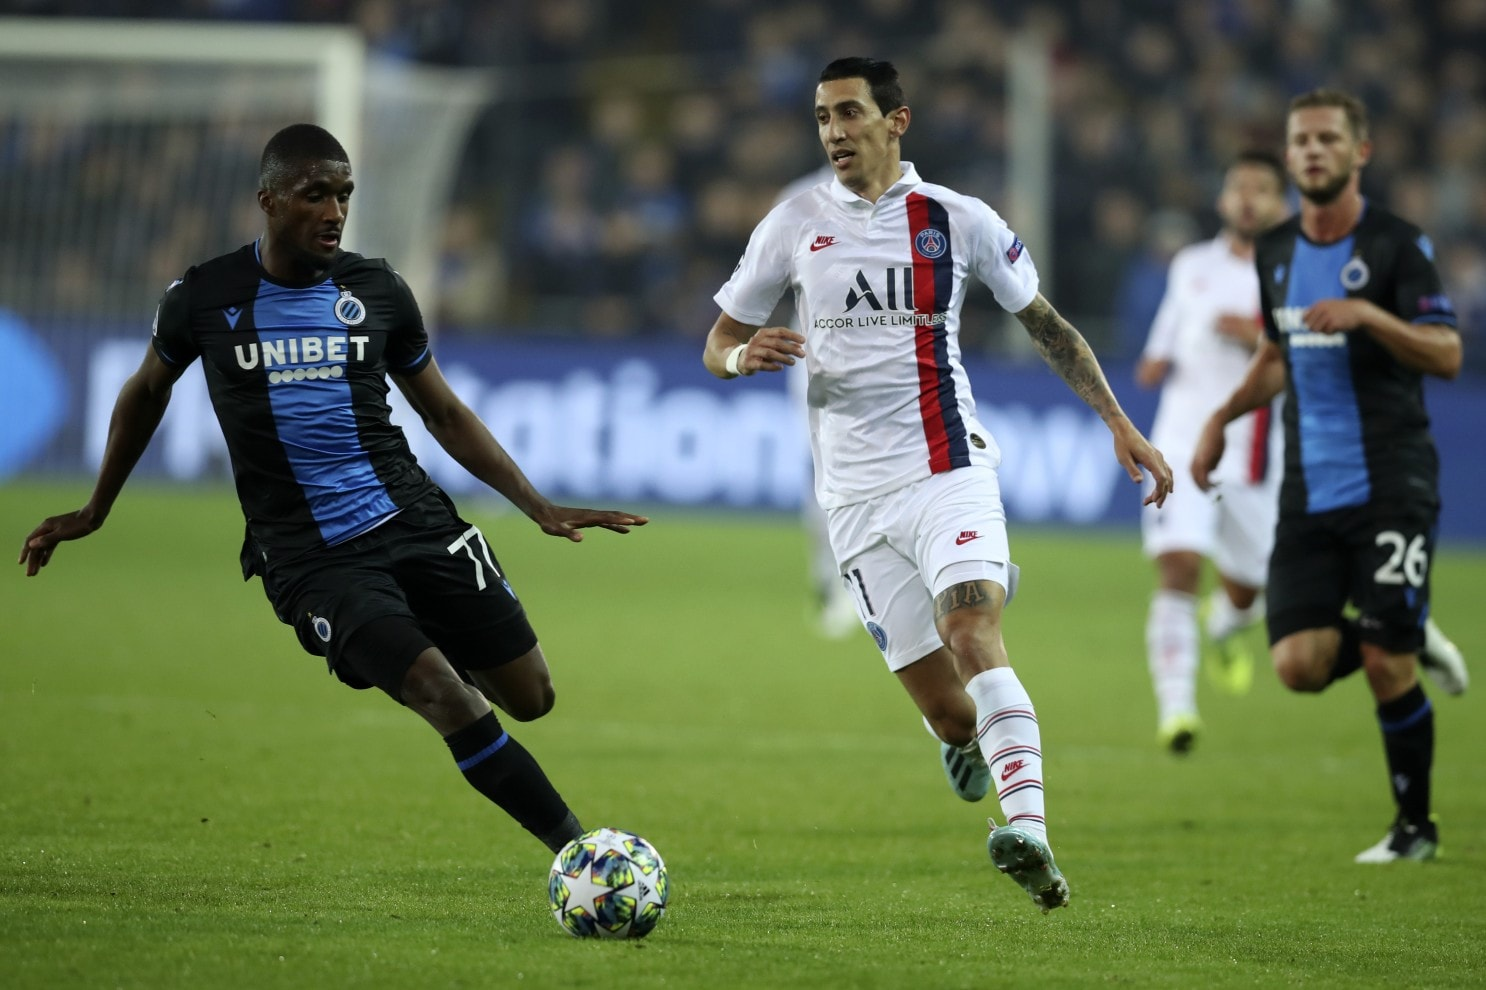 PSG vs Brugge Free Betting Tips and Odds